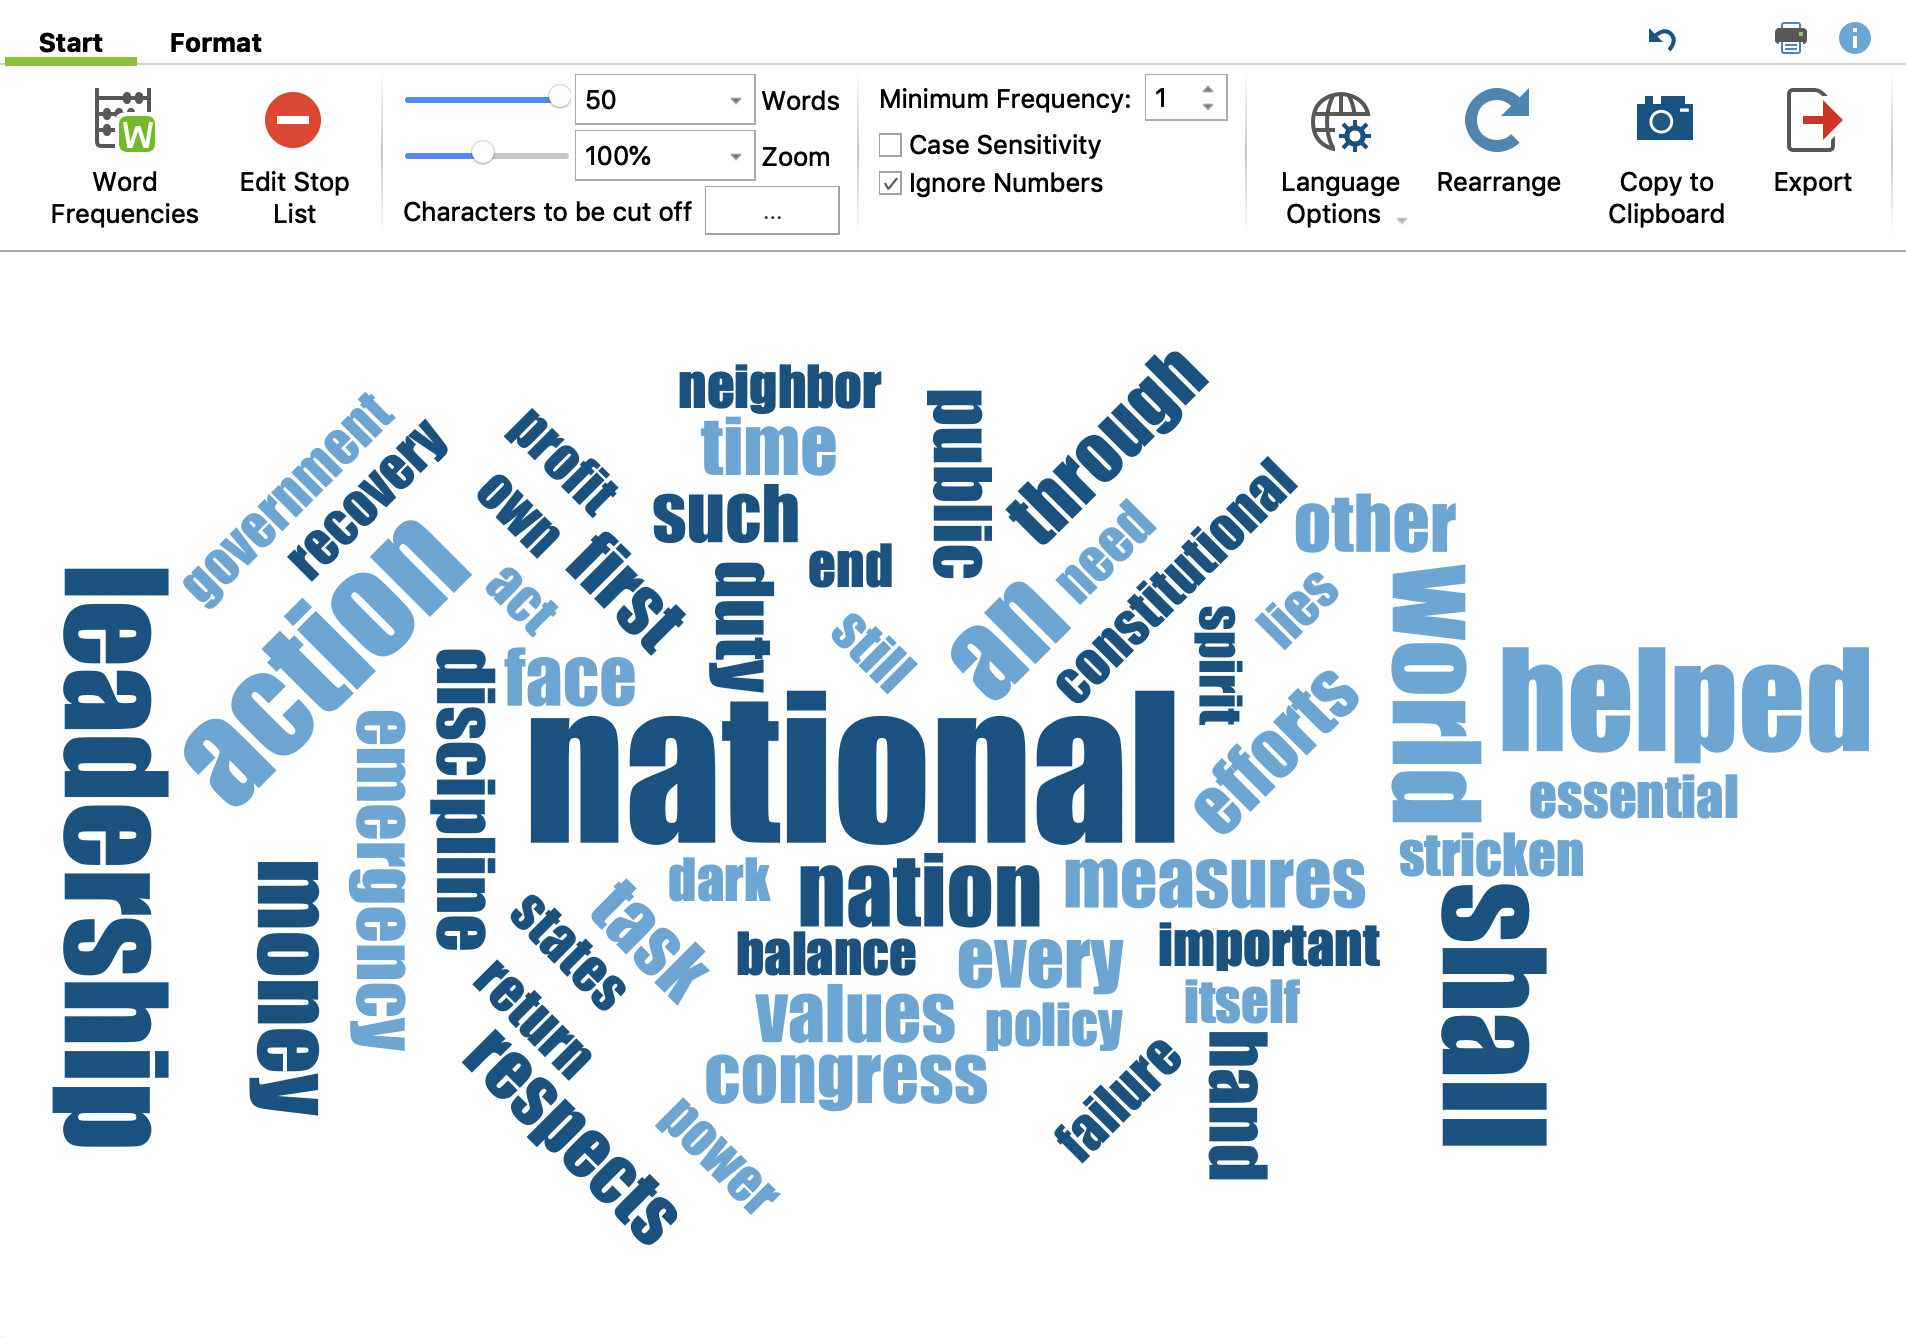 Word Cloud: Visualize Word Frequencies - MAXQDA - The Art of Data